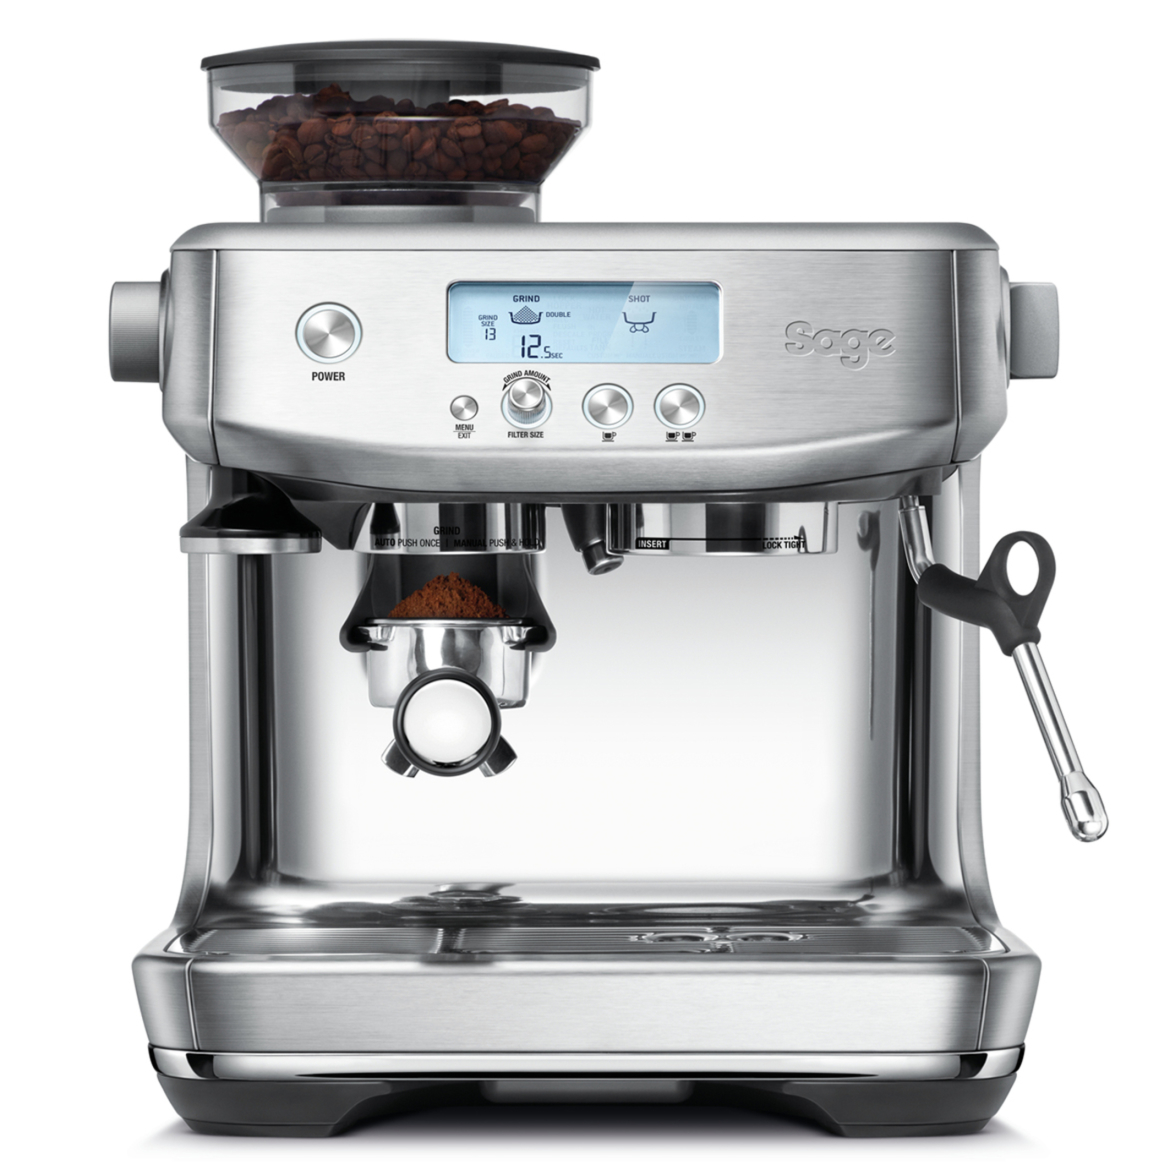 Sage Barista Pro Bean to Cup espresso machine